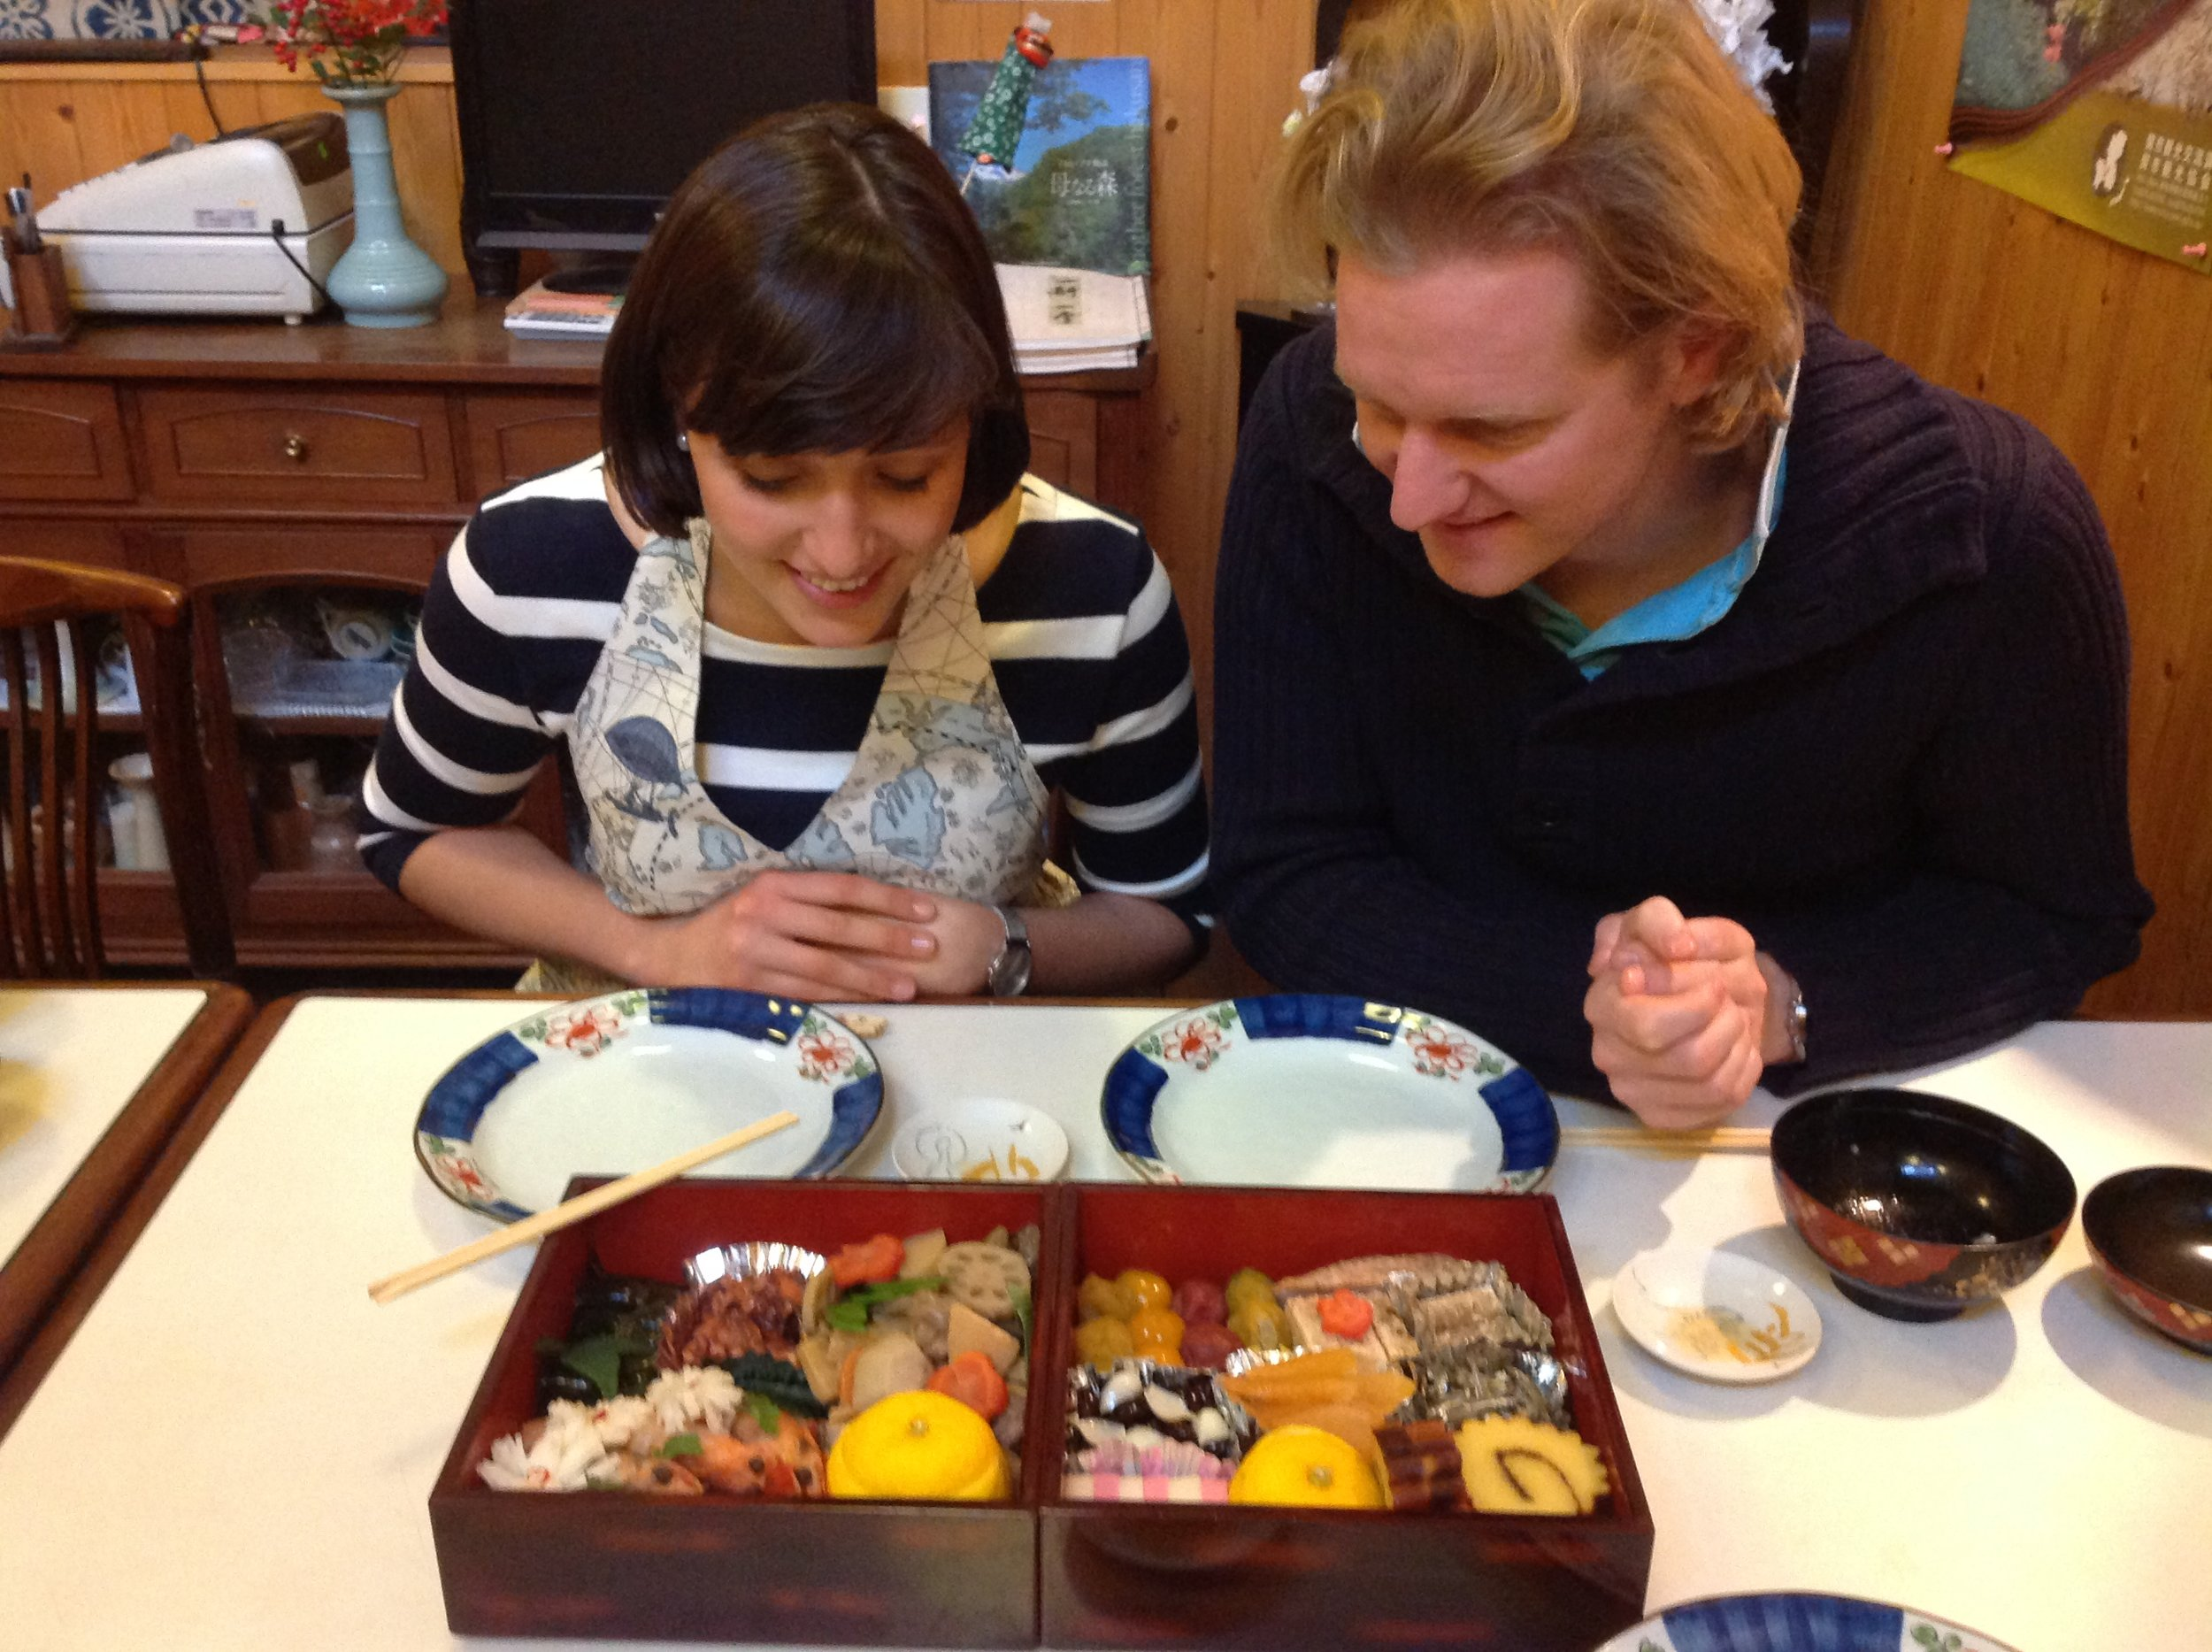 """We had a great 1st January with soup, 24 different specialties, """" BleigieBen """", tea and mirin. Hopefully we can come back soon!!  Arigato, 1st January 2014 Lufthansa Captain Thies and his partner/cabin crew Tine"""